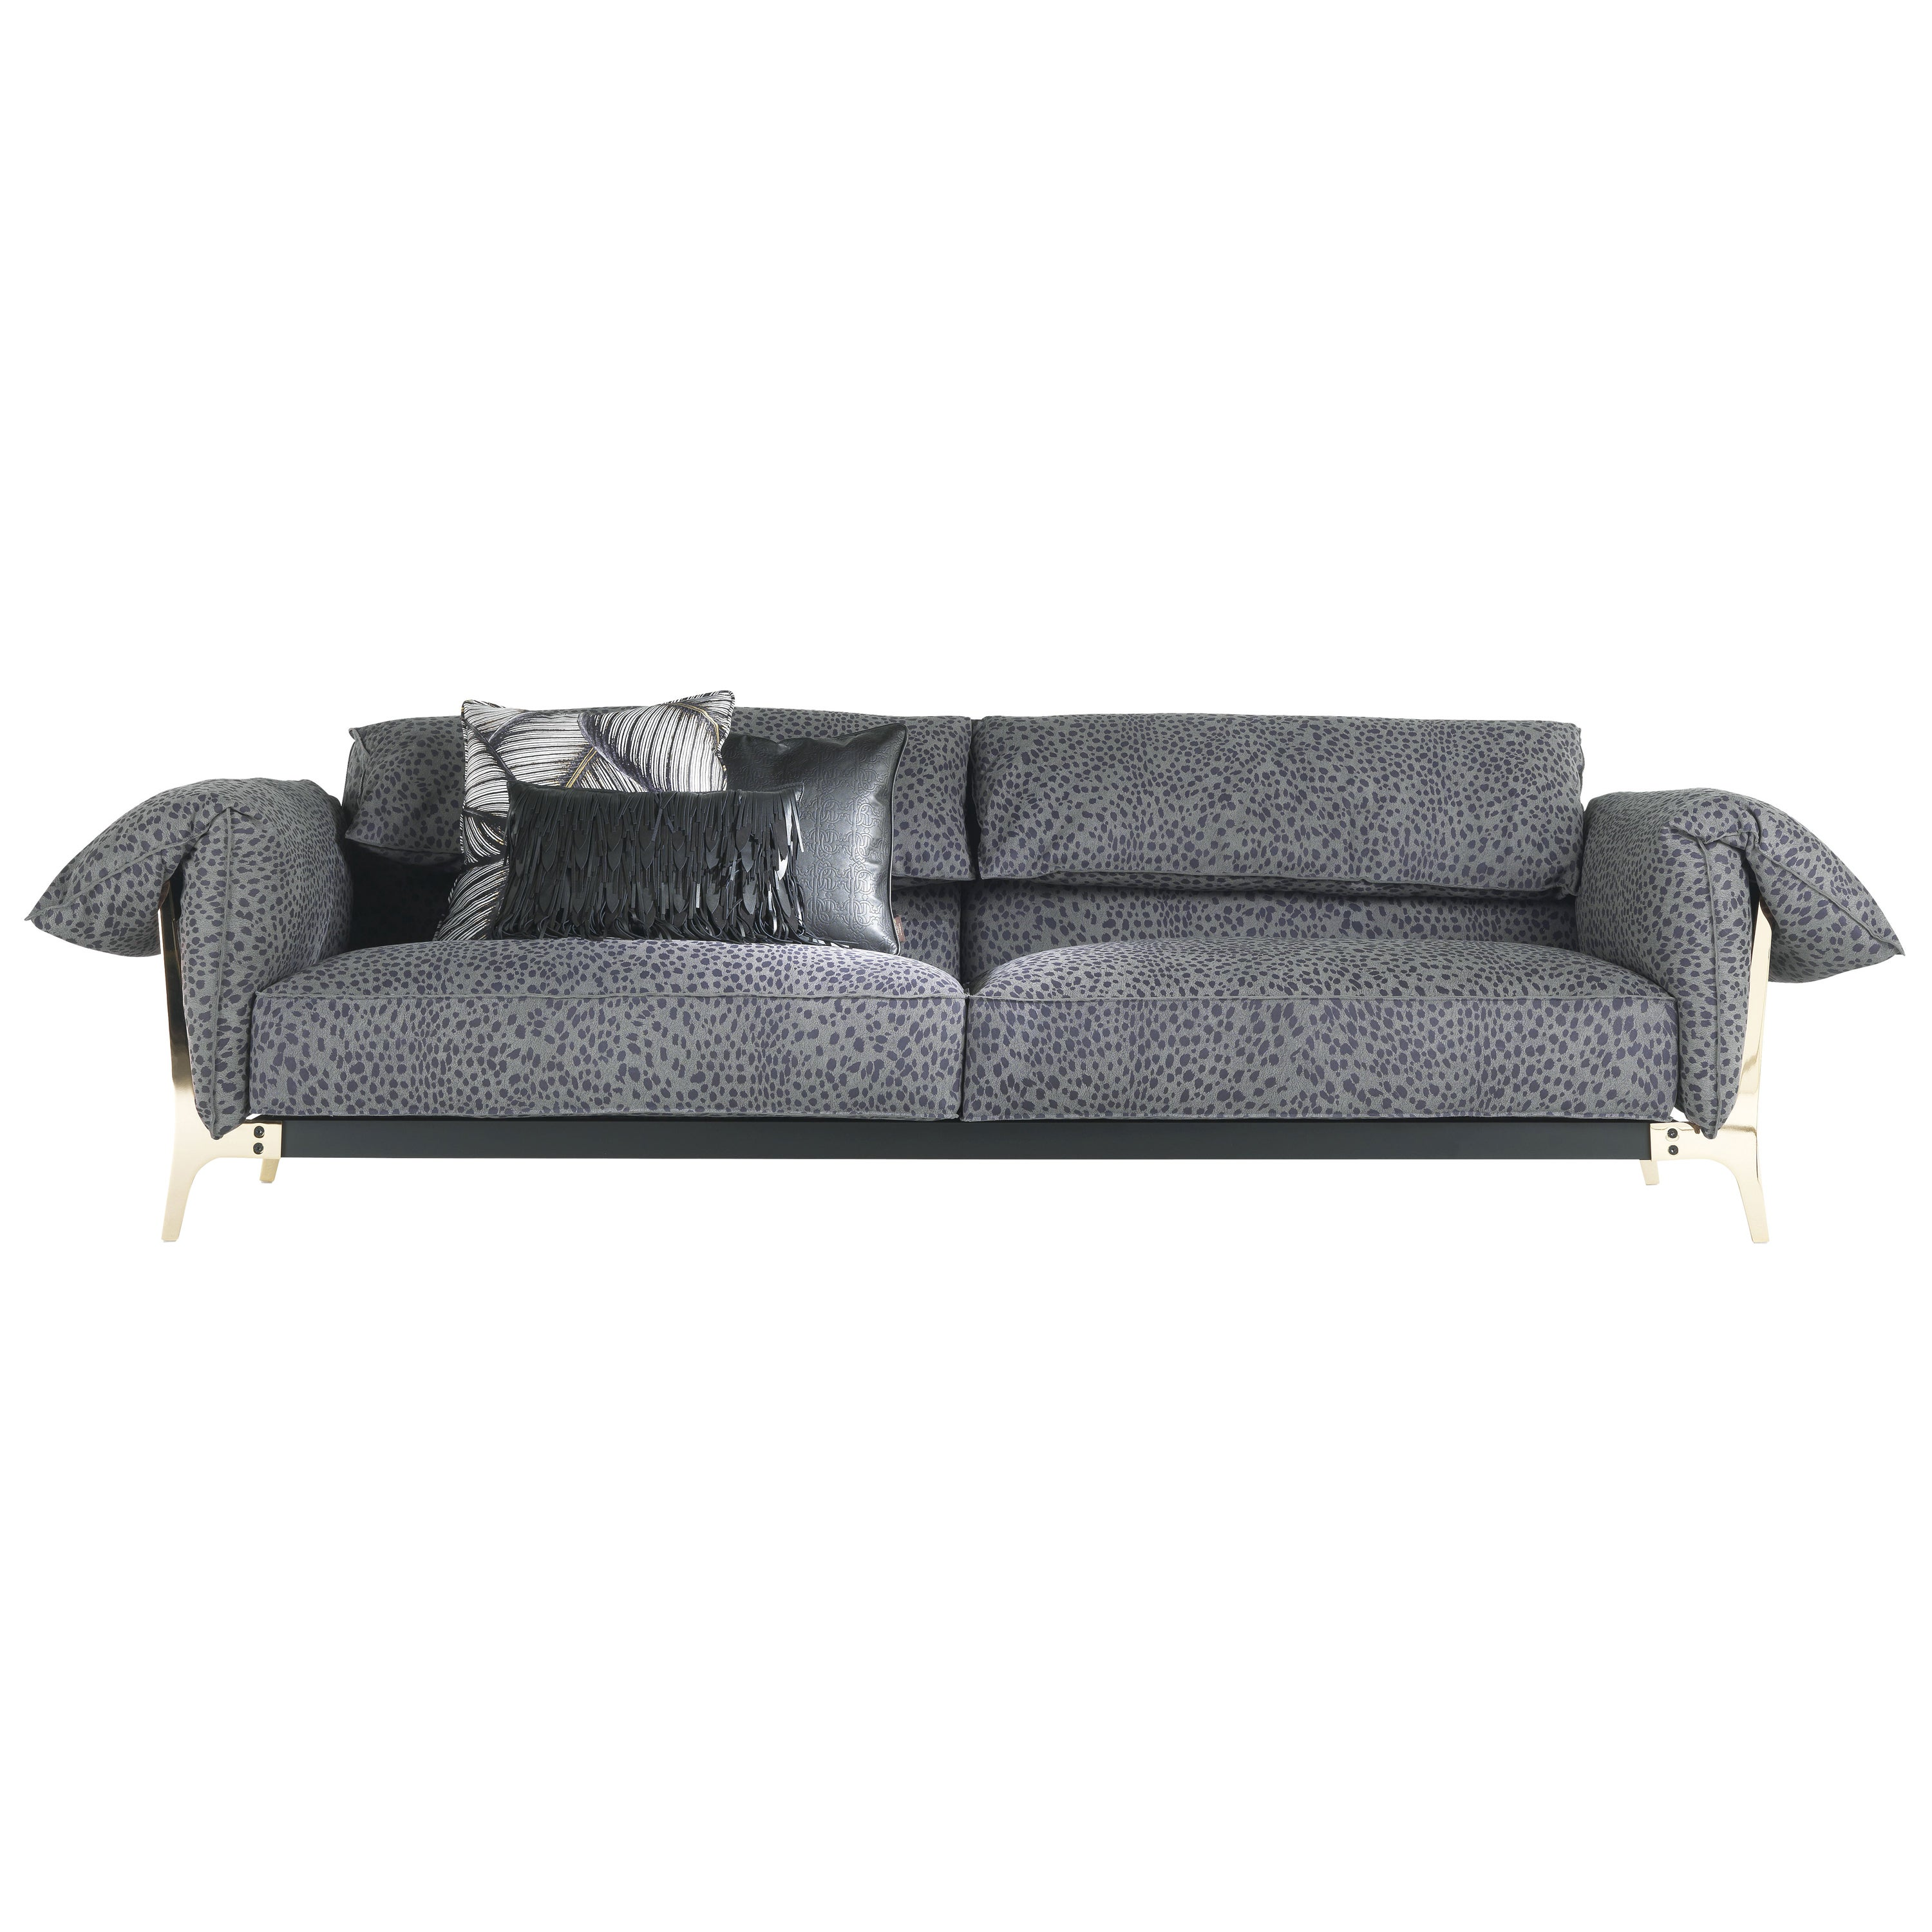 Montego 3-Seater Sofa in Leather by Roberto Cavalli Home Interiors